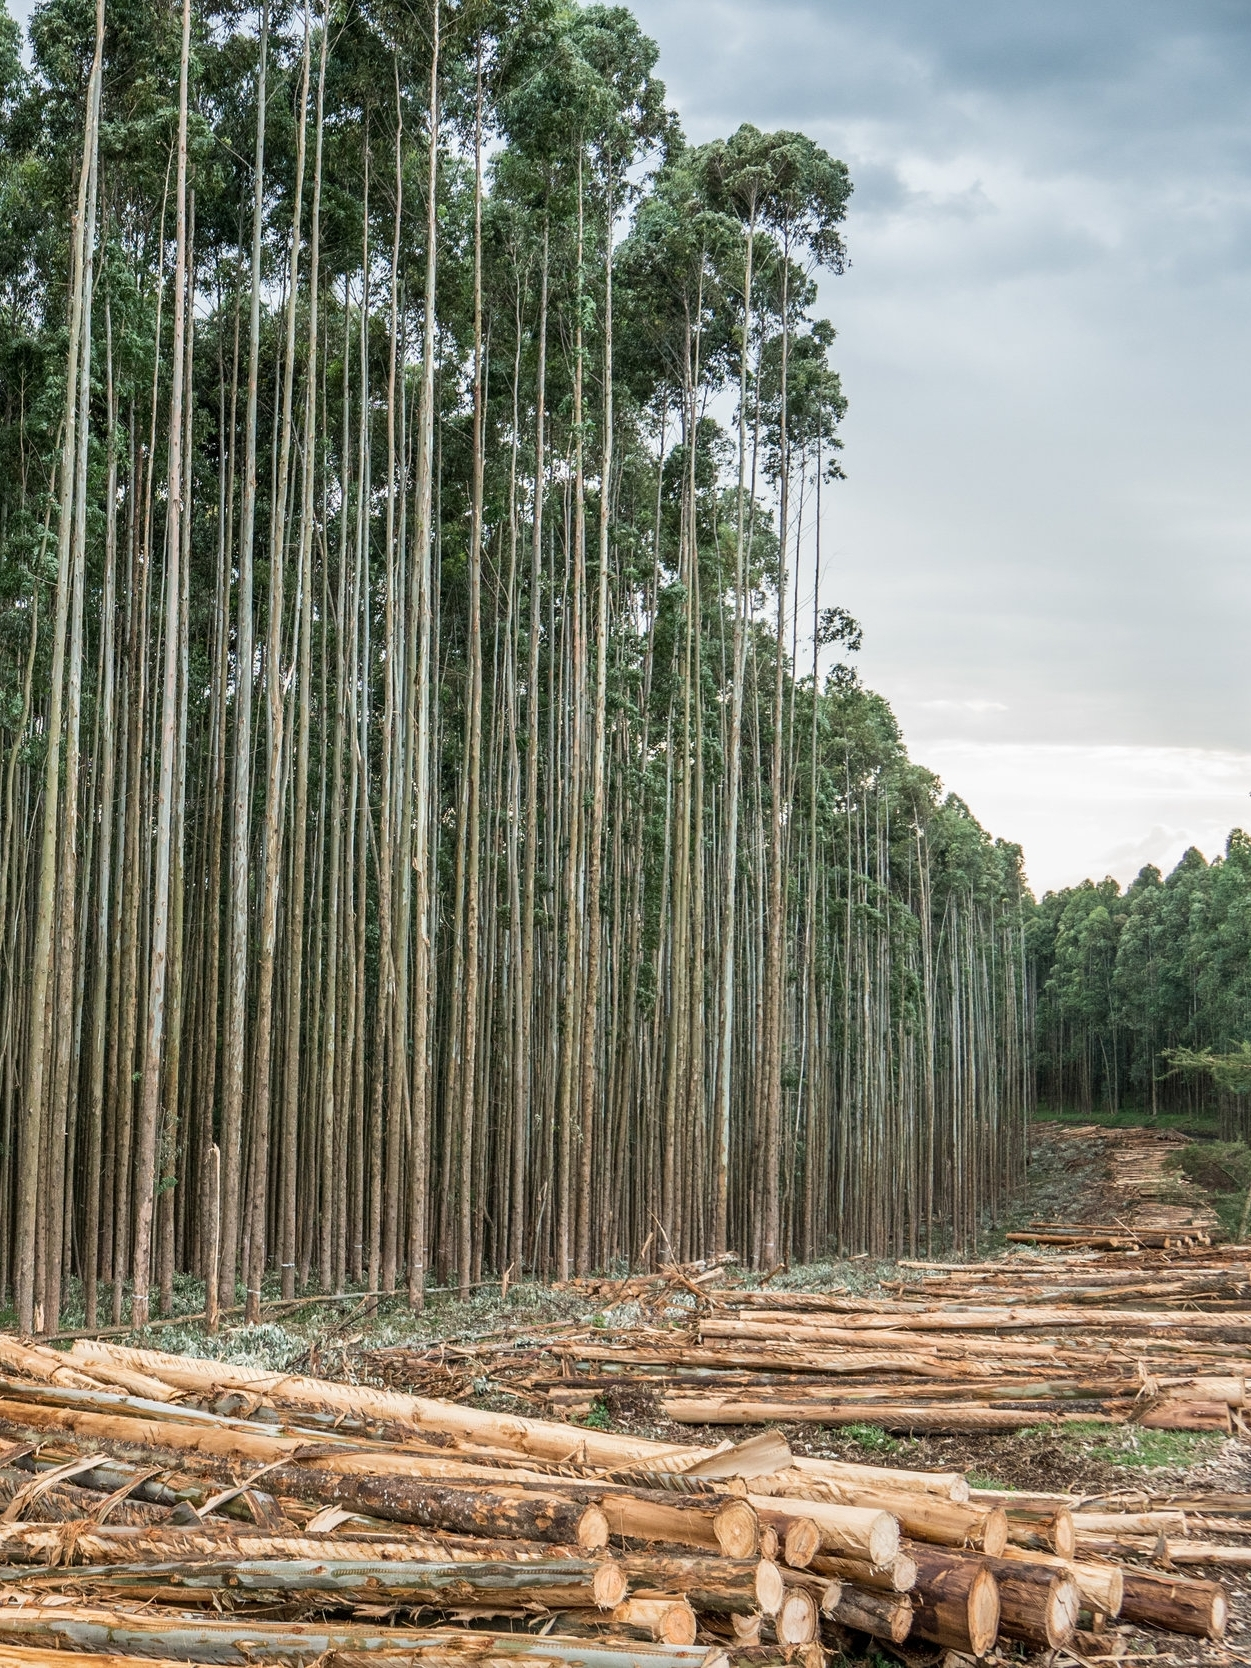 Global deforestation is accelerating. - Extractive industries and land conversion for agricultural products like beef, soy, palm oil, and pulp and paper are driving tropical deforestation. In the last decade alone, an area of forest the size of the United Kingdom, France and Germany combined has been lost forever. This destruction is unnecessary and is undermining efforts by the international community to address climate change, sustainable development and human rights.